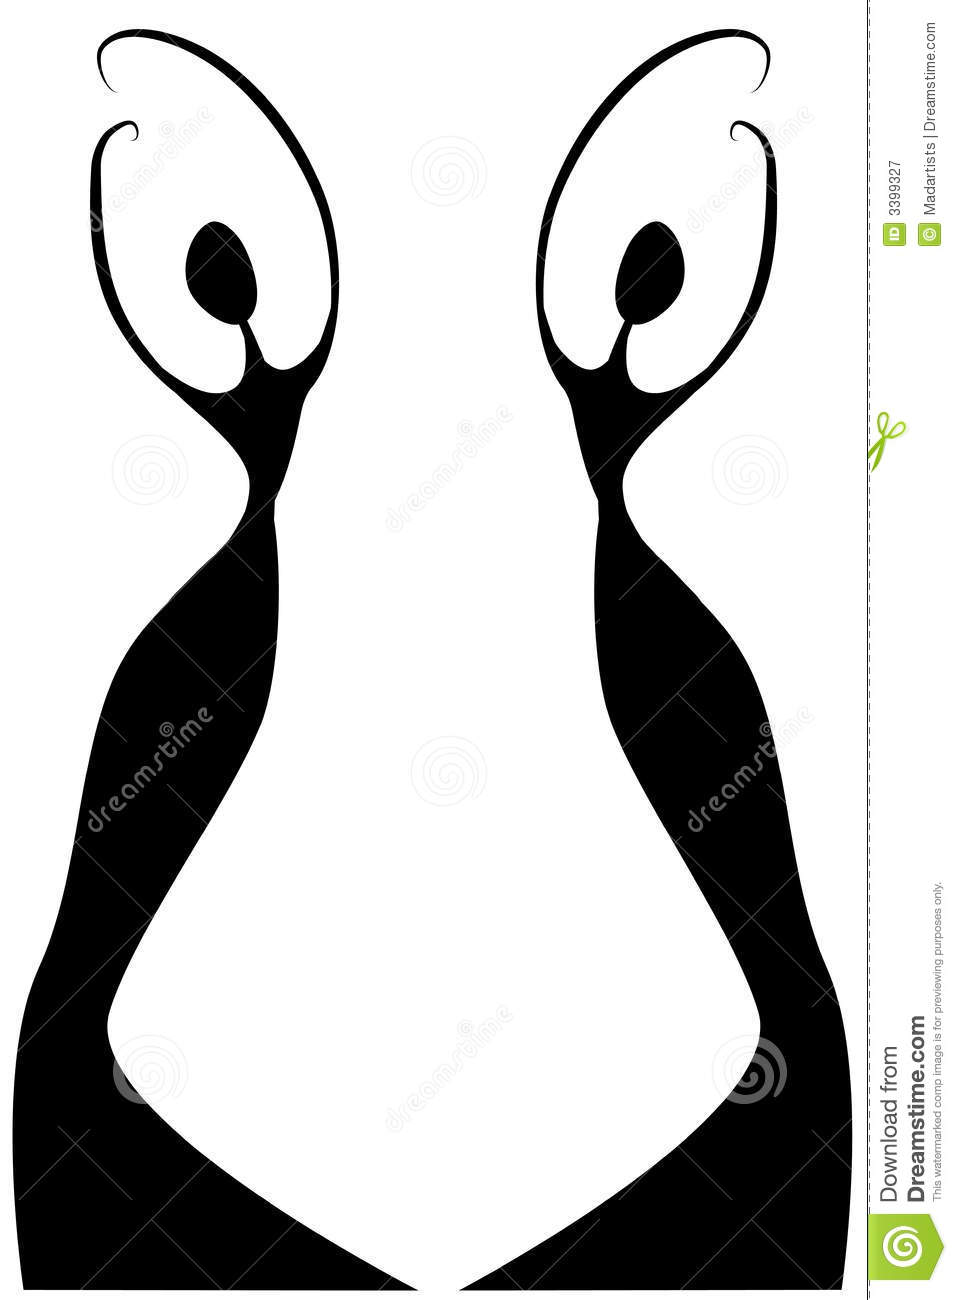 Female Silhouette Outlines